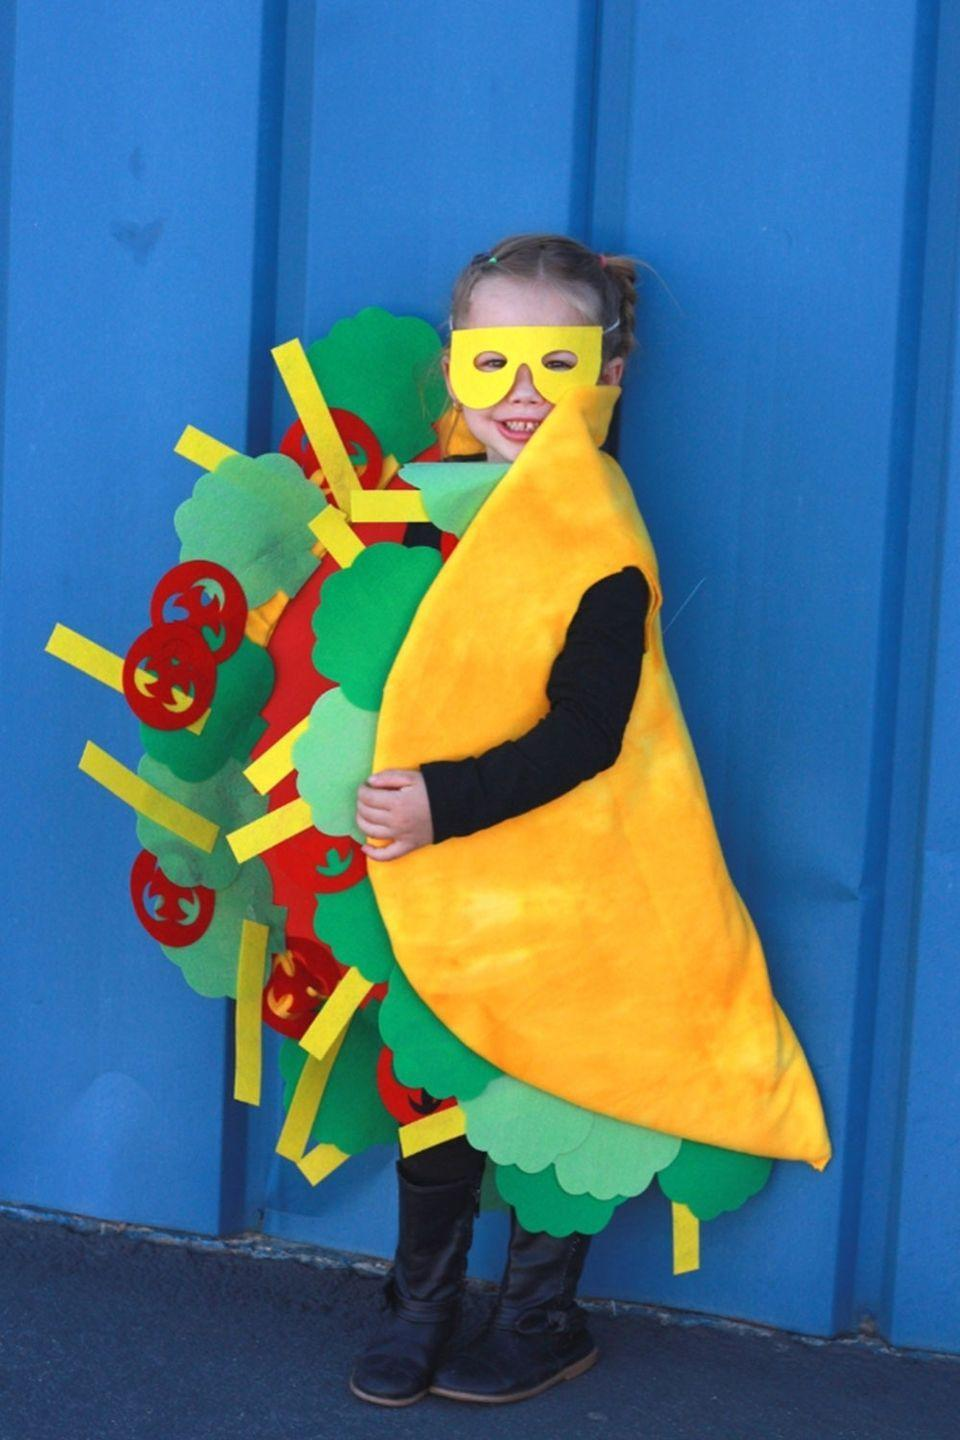 "<p>This tiny taco is just <a href=""http://www.everydayjenny.com/diy-taco-and-hot-sauce-family-costumes-with-the-cricut-maker/"" rel=""nofollow noopener"" target=""_blank"" data-ylk=""slk:too cute to eat"" class=""link rapid-noclick-resp"">too cute to eat</a>!</p><p><strong>RELATED: </strong><a href=""https://www.goodhousekeeping.com/holidays/halloween-ideas/g1709/homemade-halloween-costumes/"" rel=""nofollow noopener"" target=""_blank"" data-ylk=""slk:56 Easy Homemade Halloween Costumes for Adults, Kids, and Everyone in Between"" class=""link rapid-noclick-resp"">56 Easy Homemade Halloween Costumes for Adults, Kids, and Everyone in Between</a></p>"